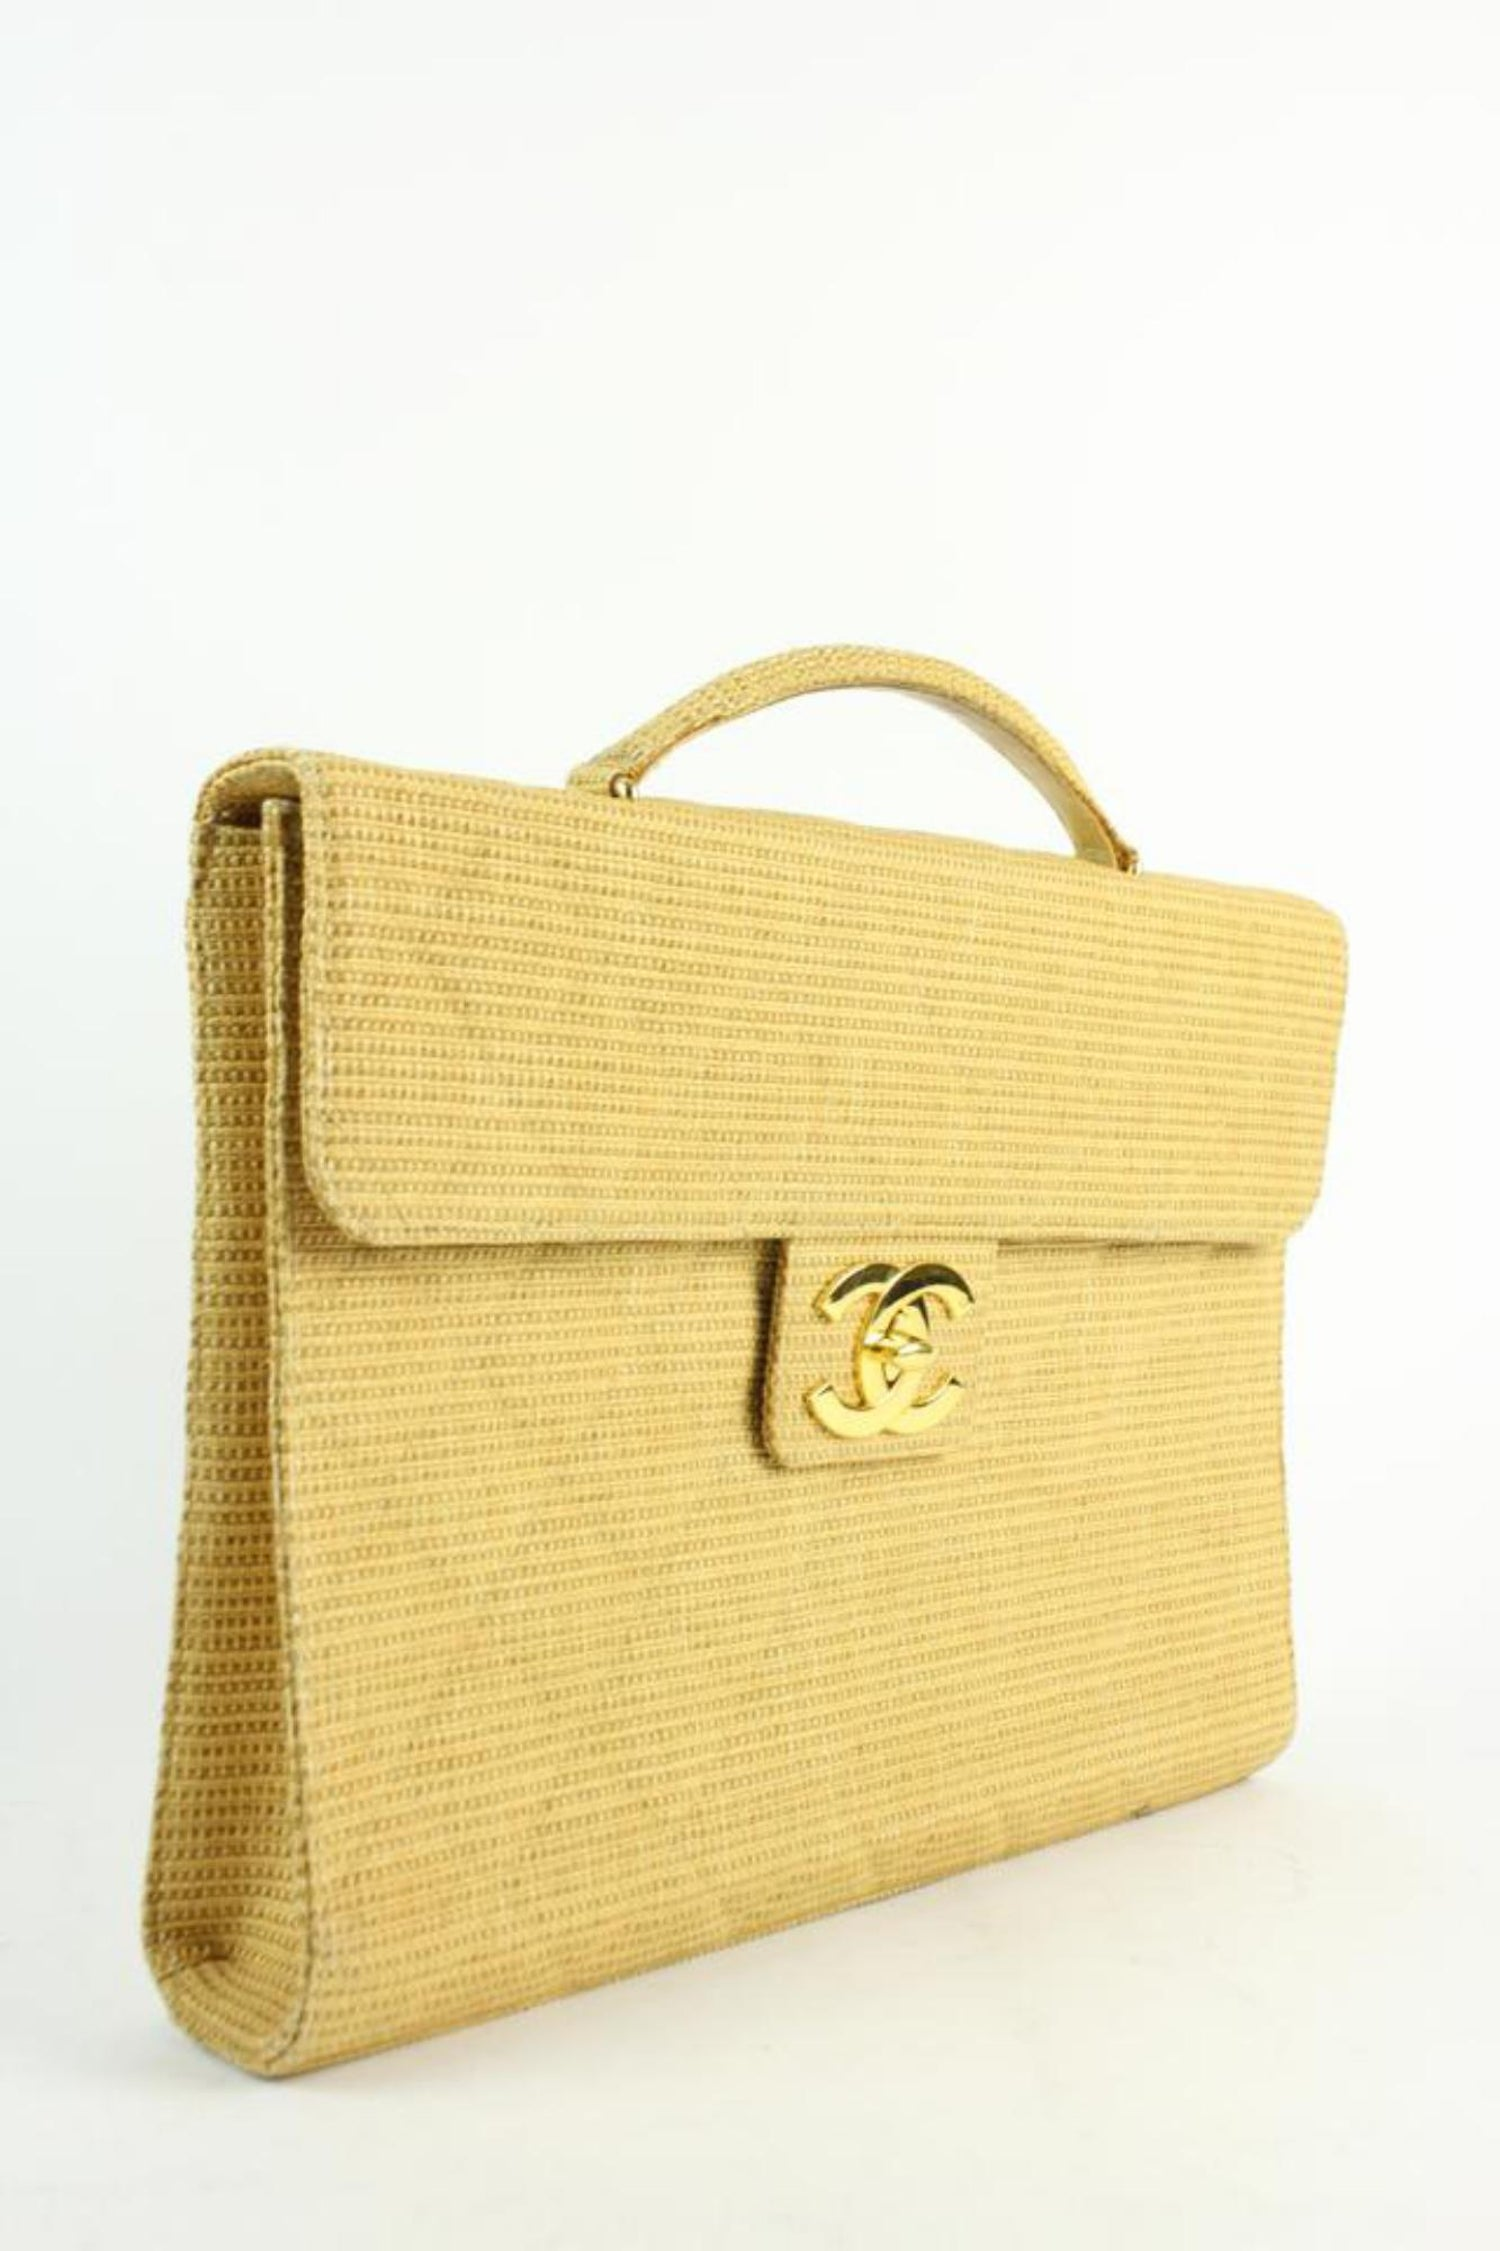 d299fd3a9951 Chanel Classic Flap Quilted Jumbo Attache 212197 Beige Laptop Bag For Sale  at 1stdibs